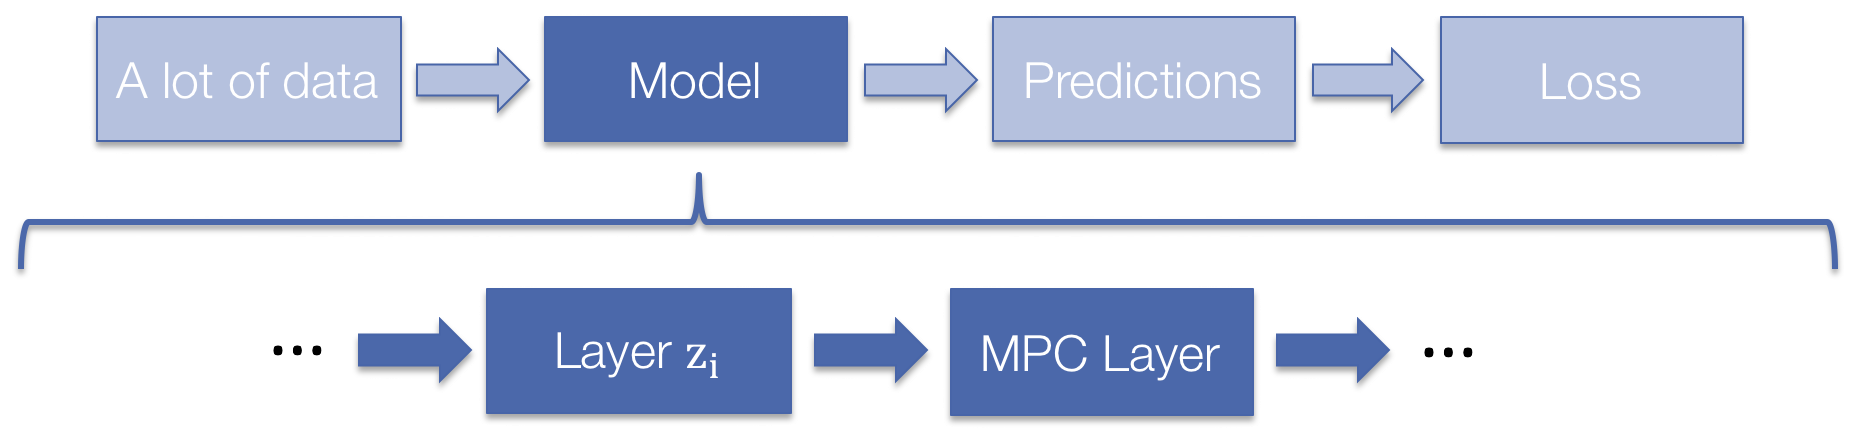 mpc pytorch: A fast and differentiable MPC solver for PyTorch